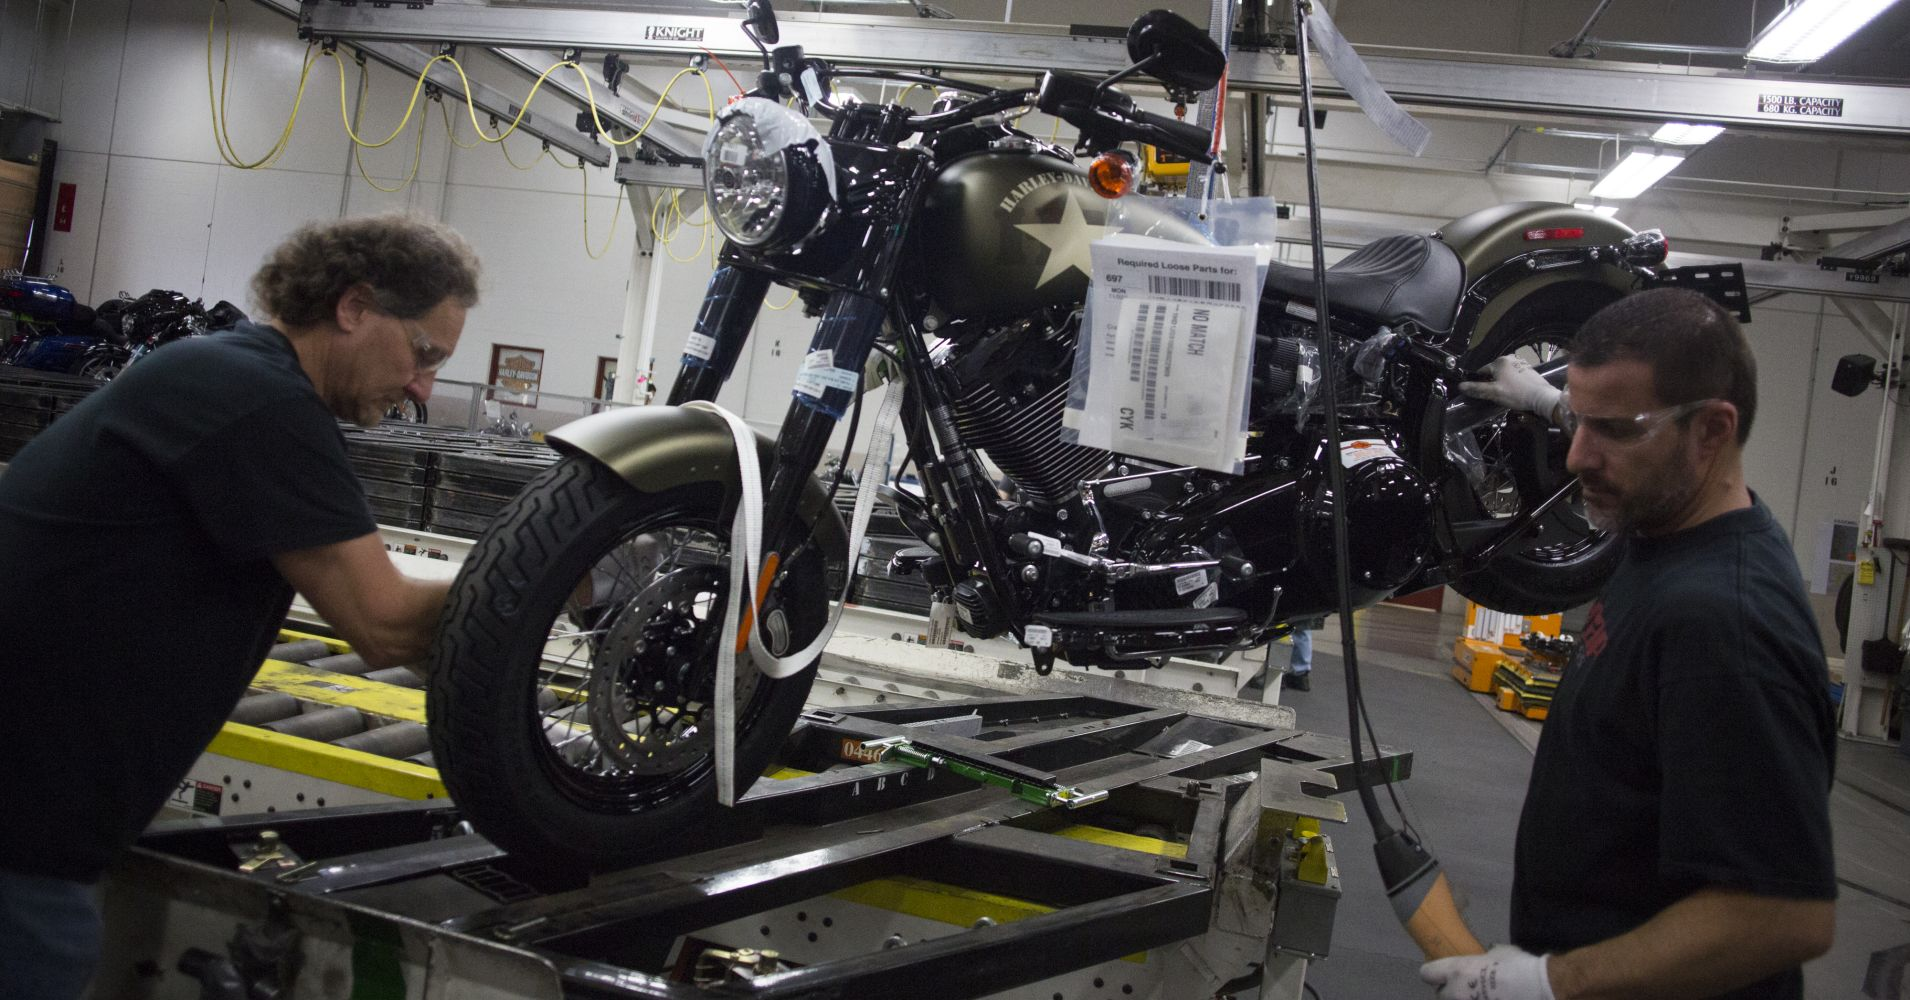 Harley Davidson: Harley-Davidson To Move Some Production Out Of US To Avoid